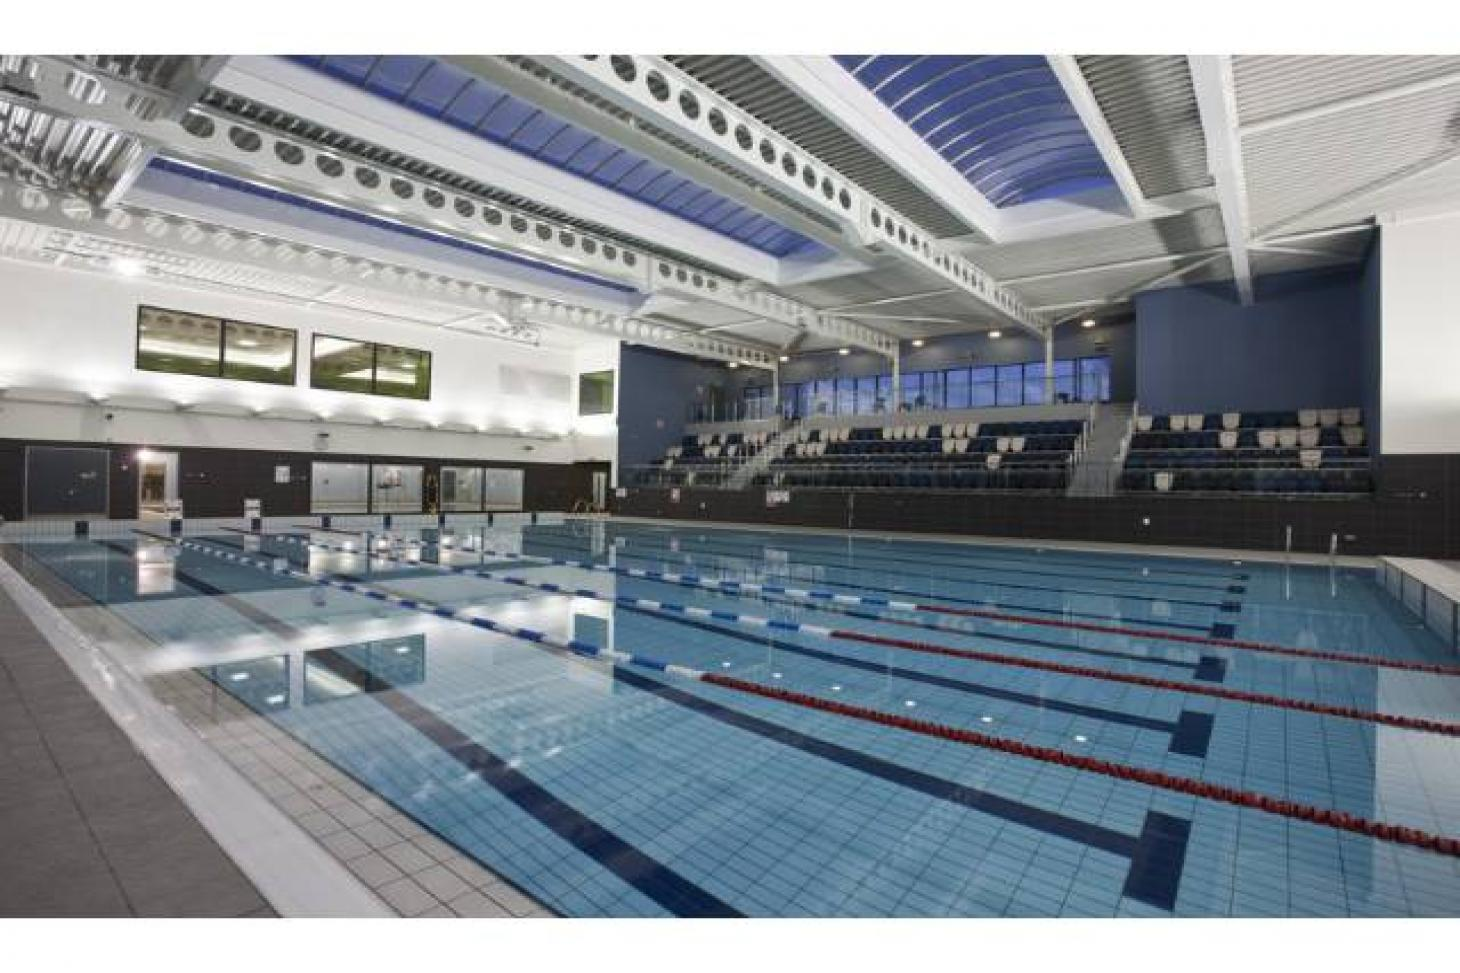 Northolt Leisure Centre Indoor swimming pool